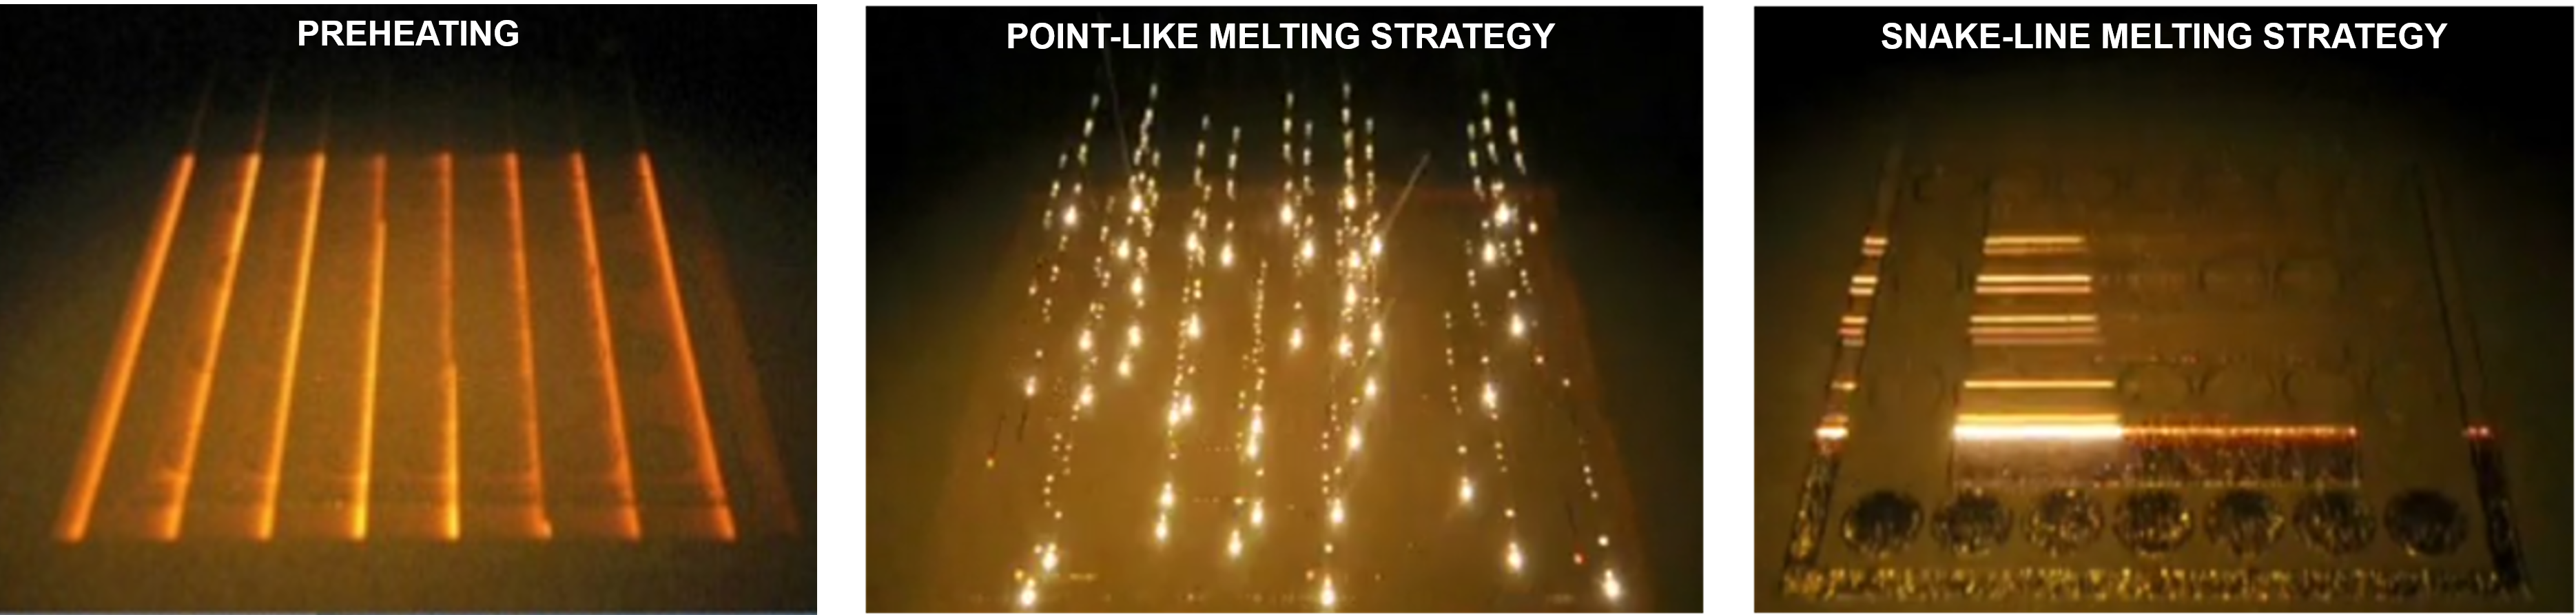 Melting strategies